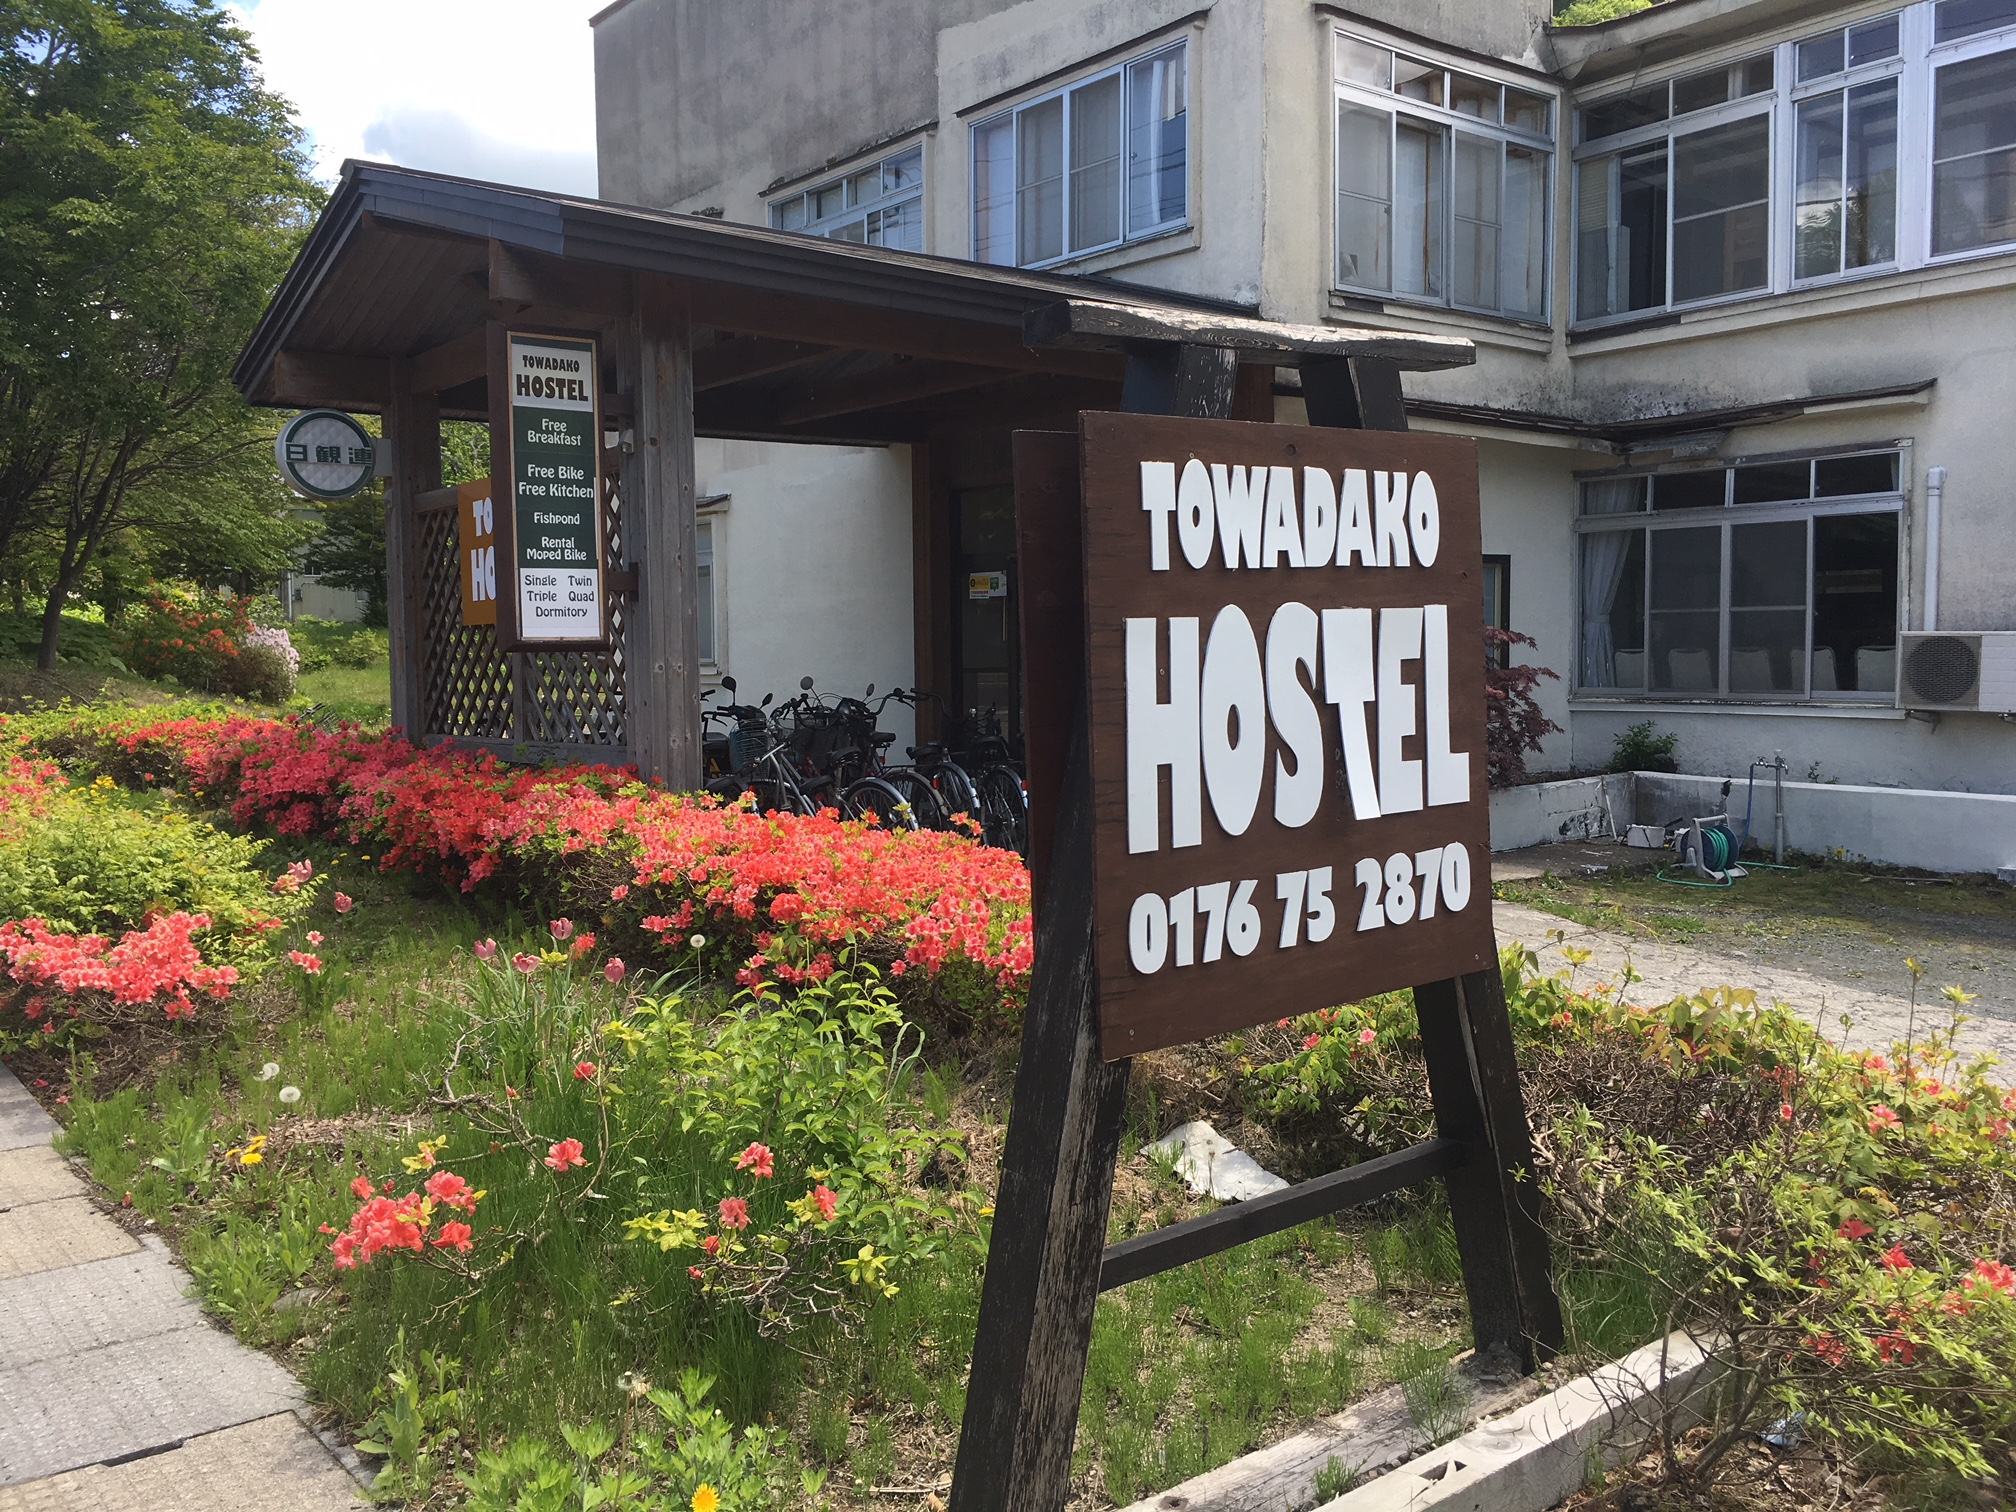 Towadako Hostel